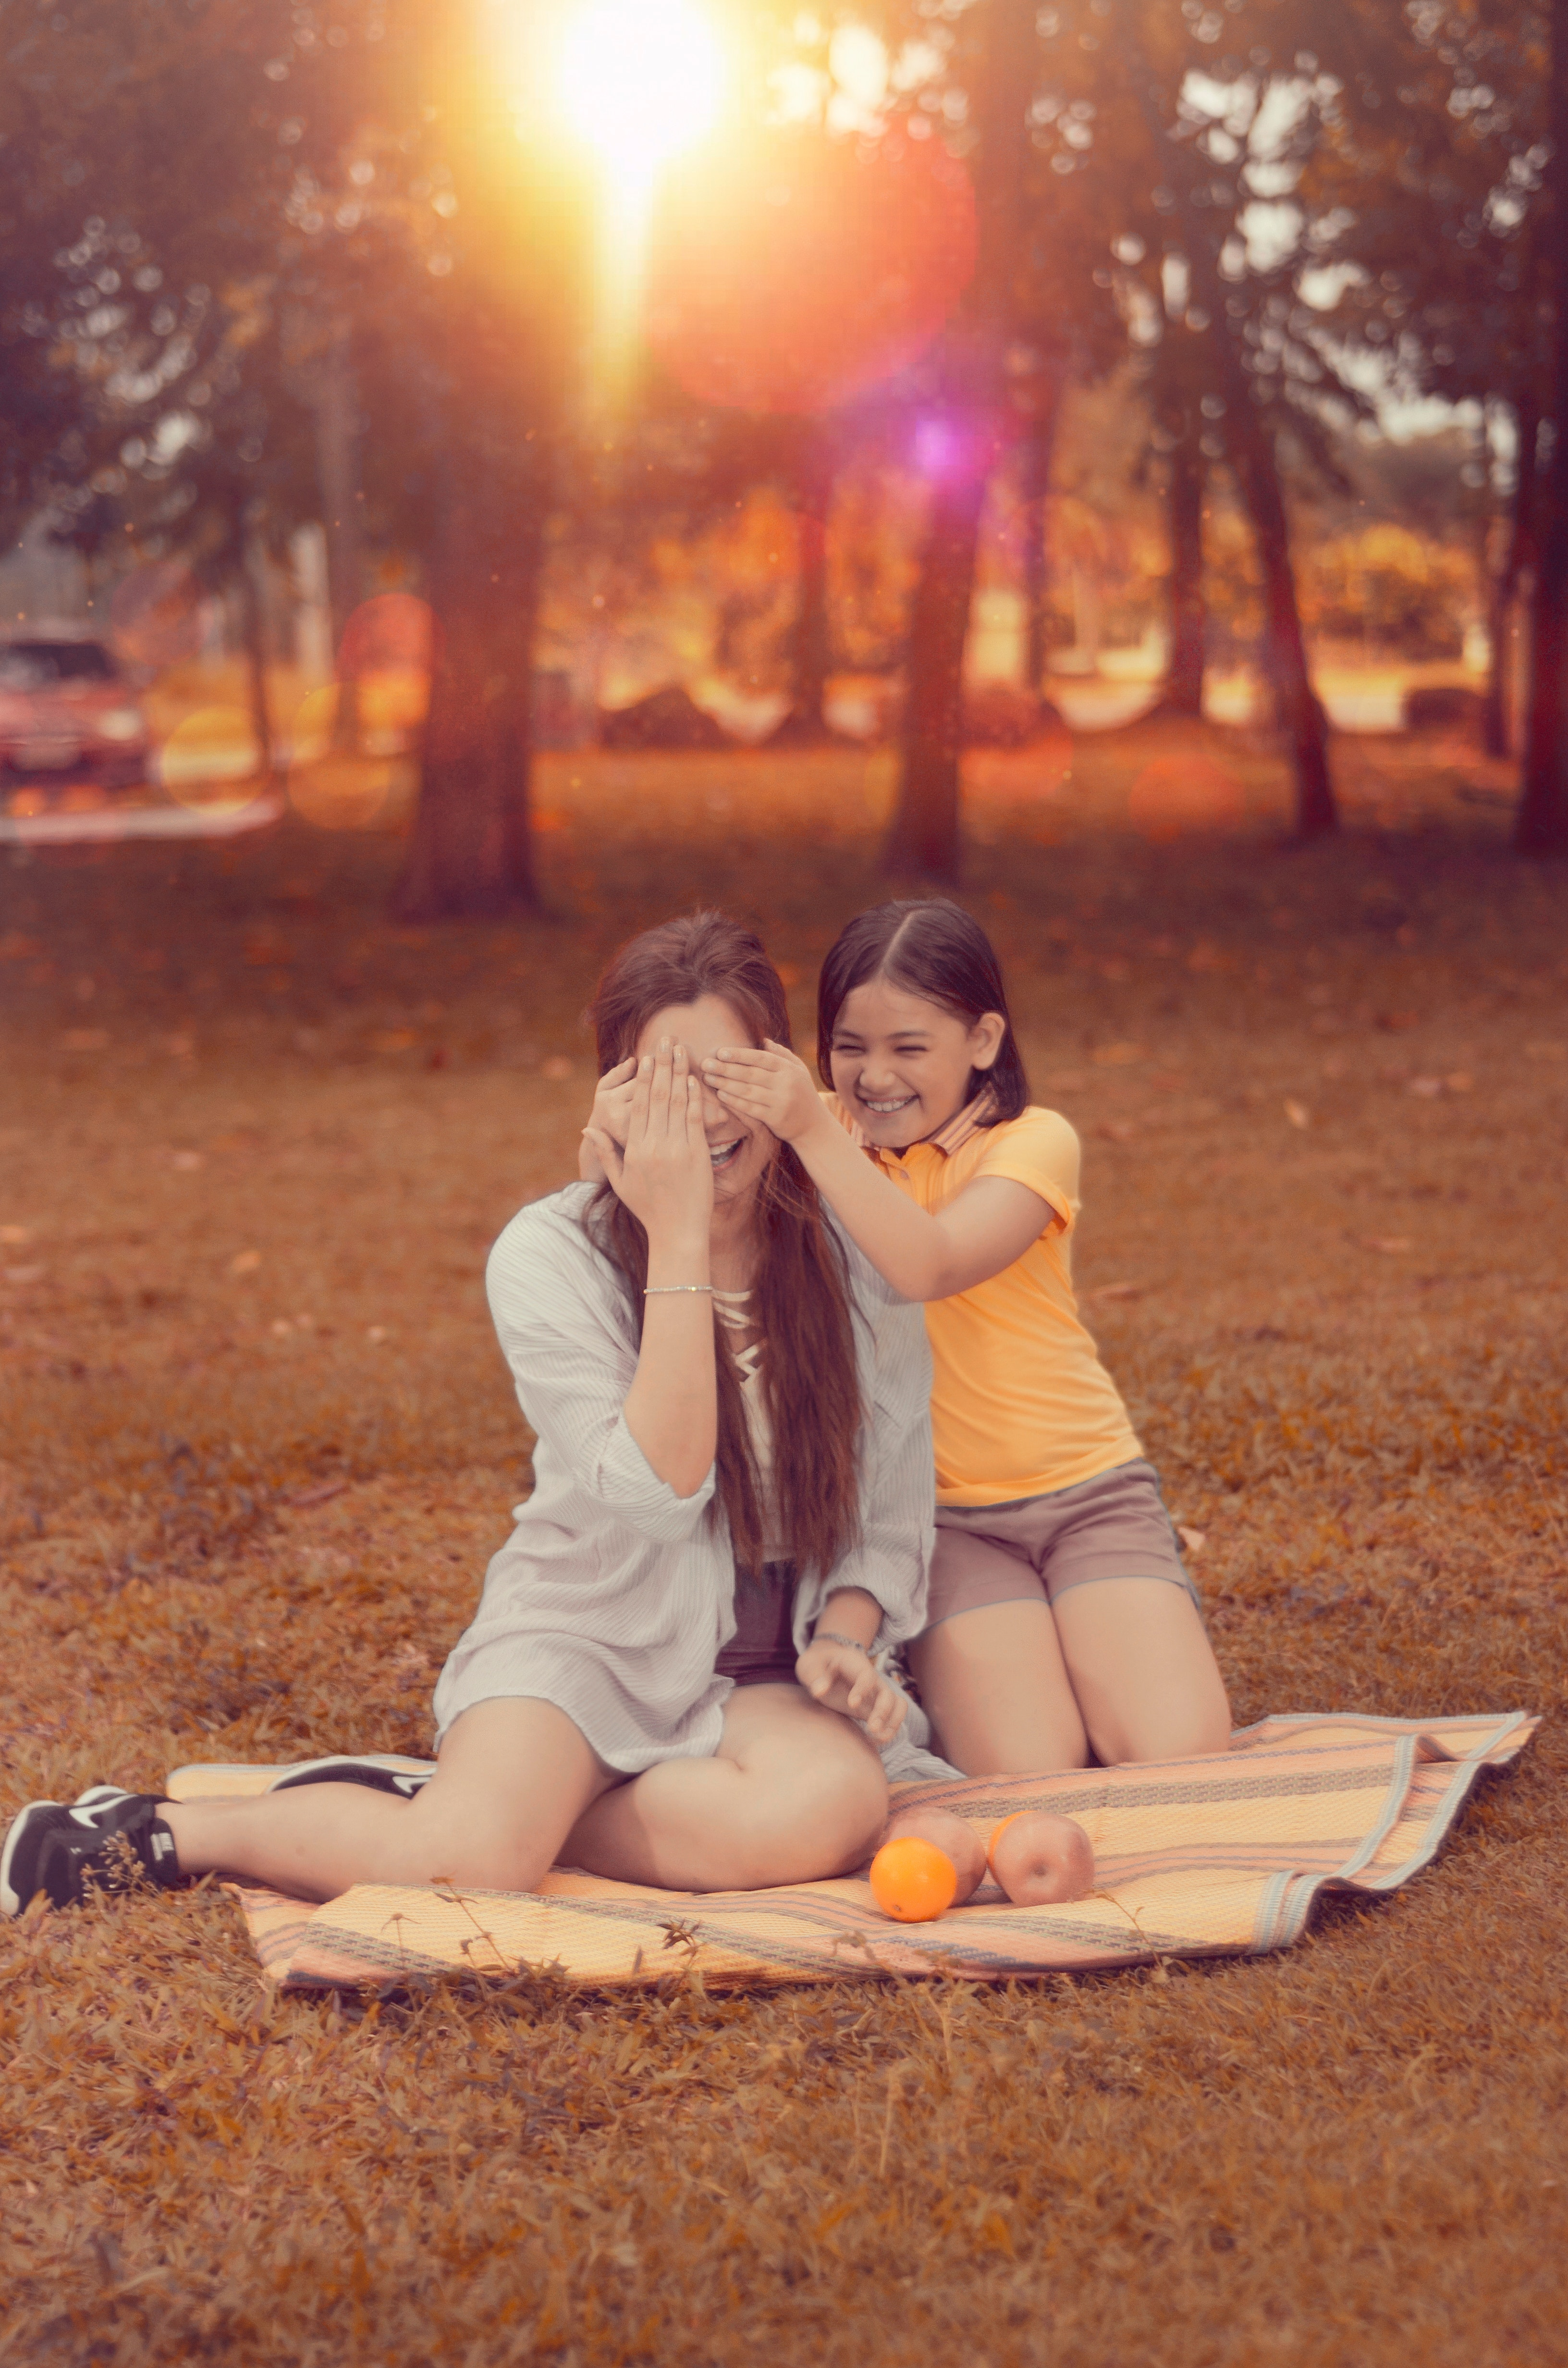 Two Women Sitting on Brown Picnic Mat during Sunset, Smiling, Summer, Sun, Recreation, HQ Photo